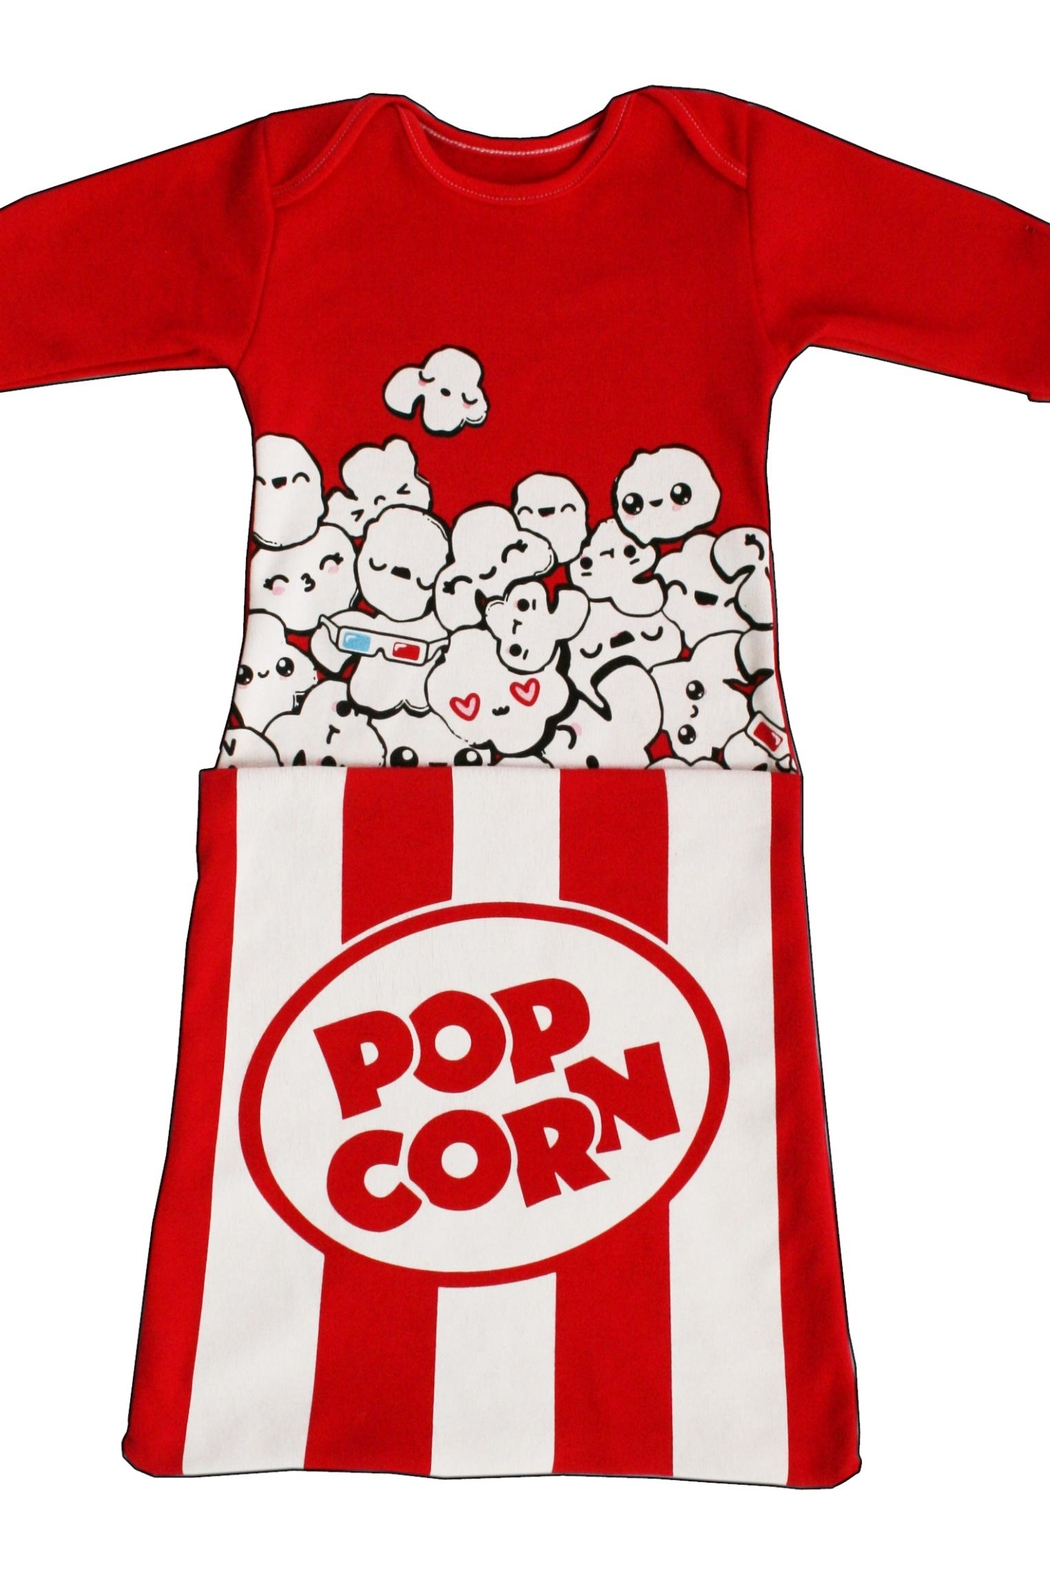 Electrik Kidz Pocket Gown - Popcorn - Main Image